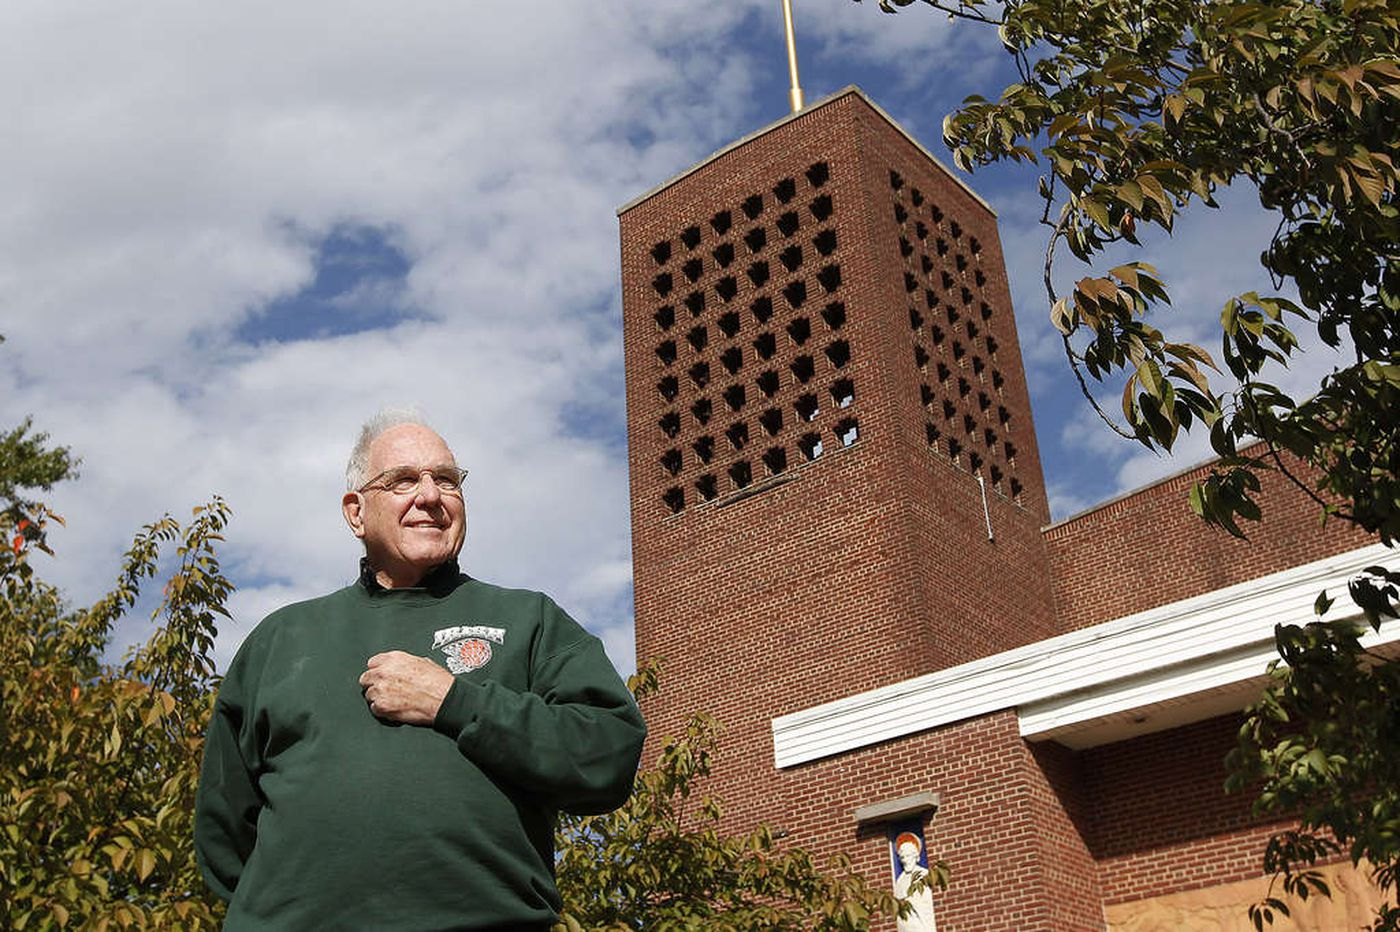 Remembering 'Father Bob' McDermott, whose boyhood neighborhood in Camden became his life's work | Kevin Riordan